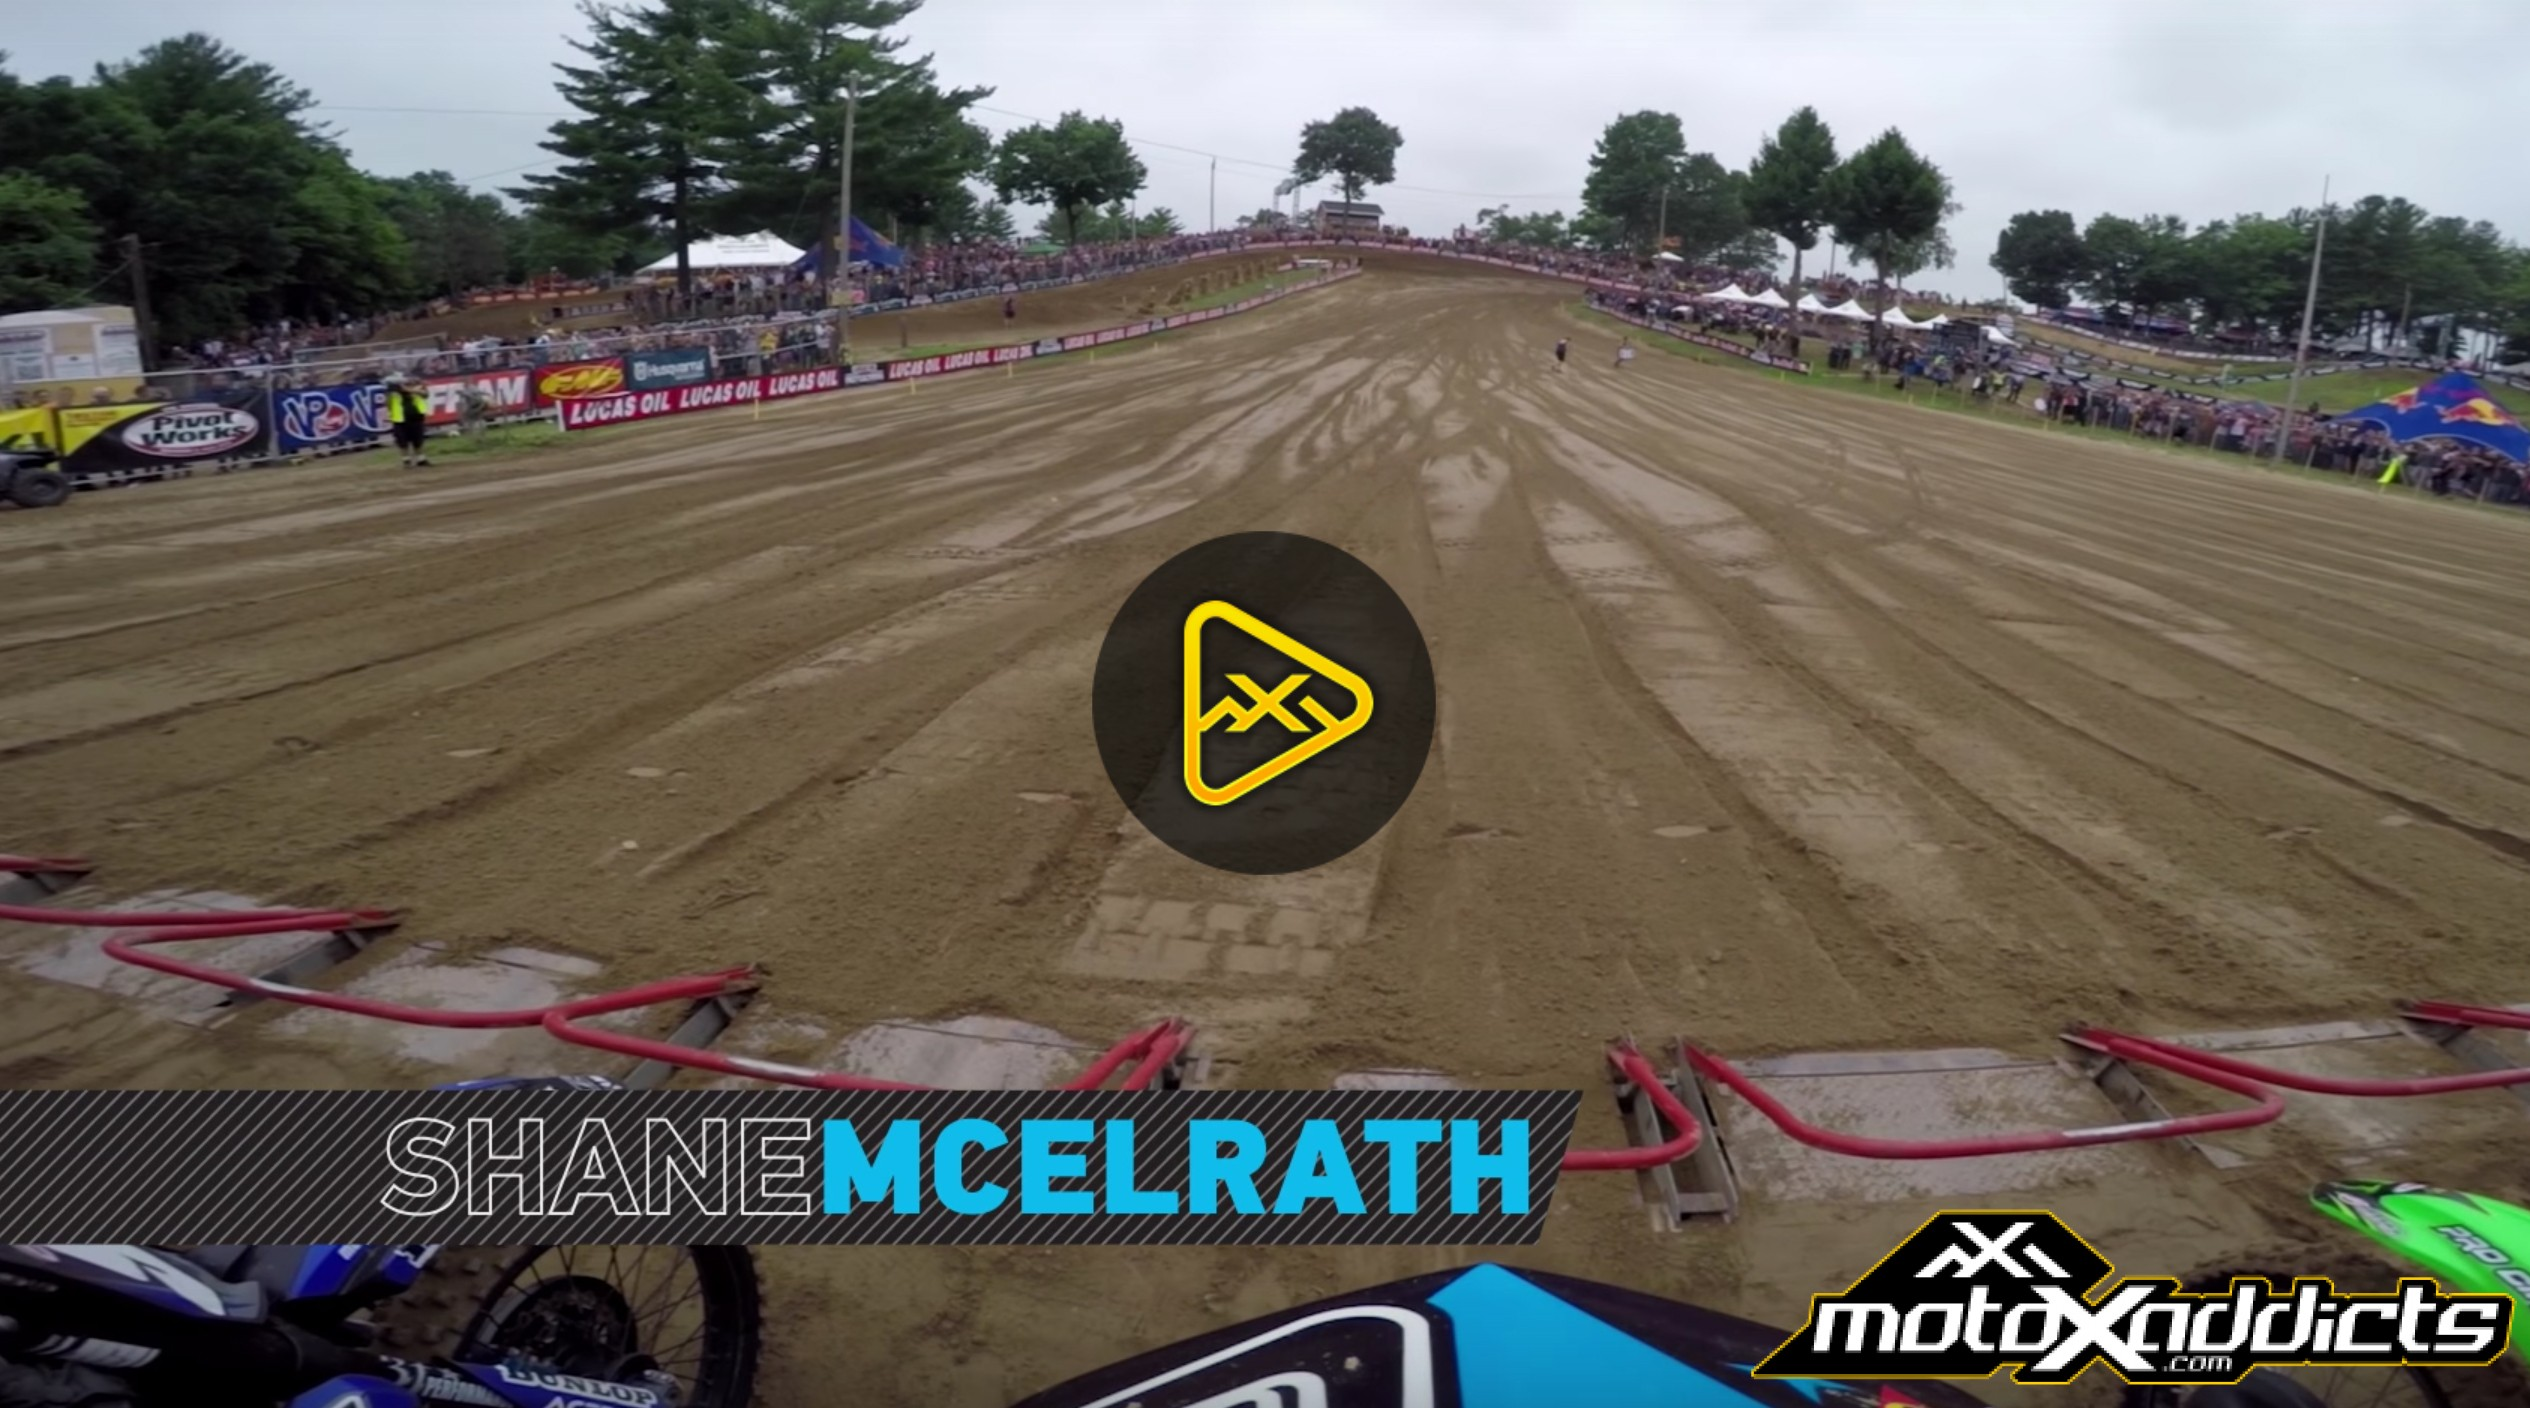 GoPro Helmet Cam: Shane McElrath at 2016 Southwick National